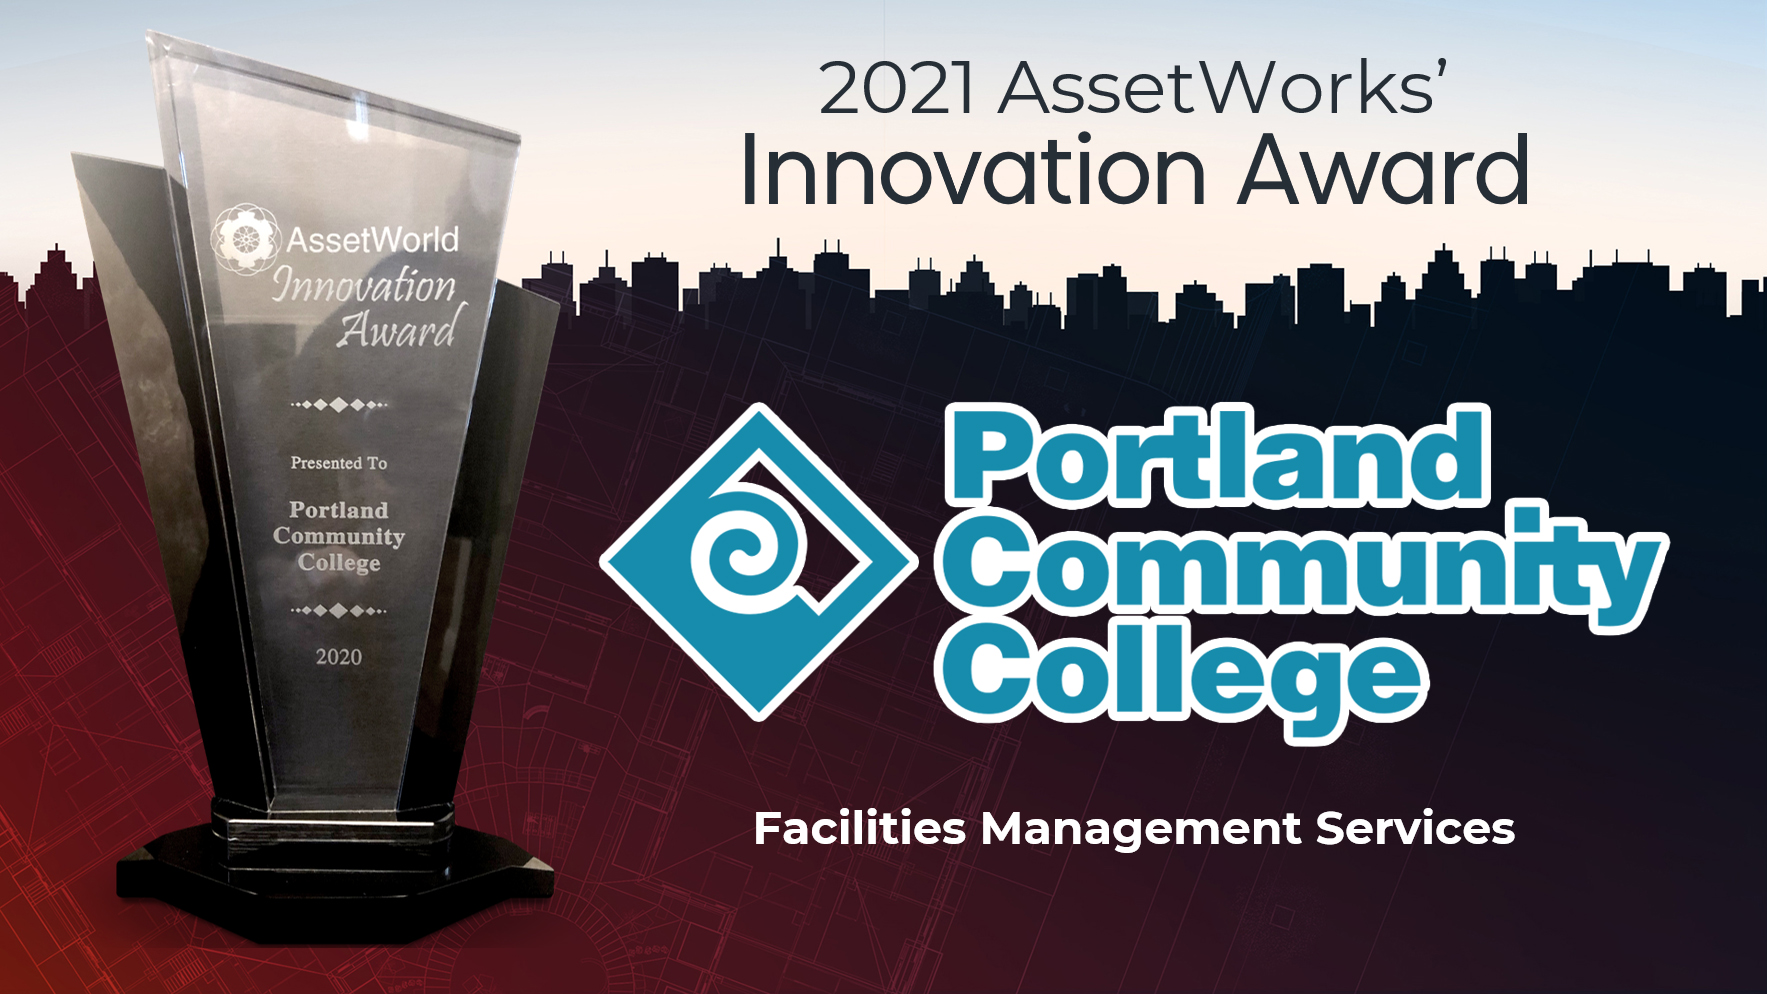 Portland Community College wins AssetWorld's 2021 Innovation Award